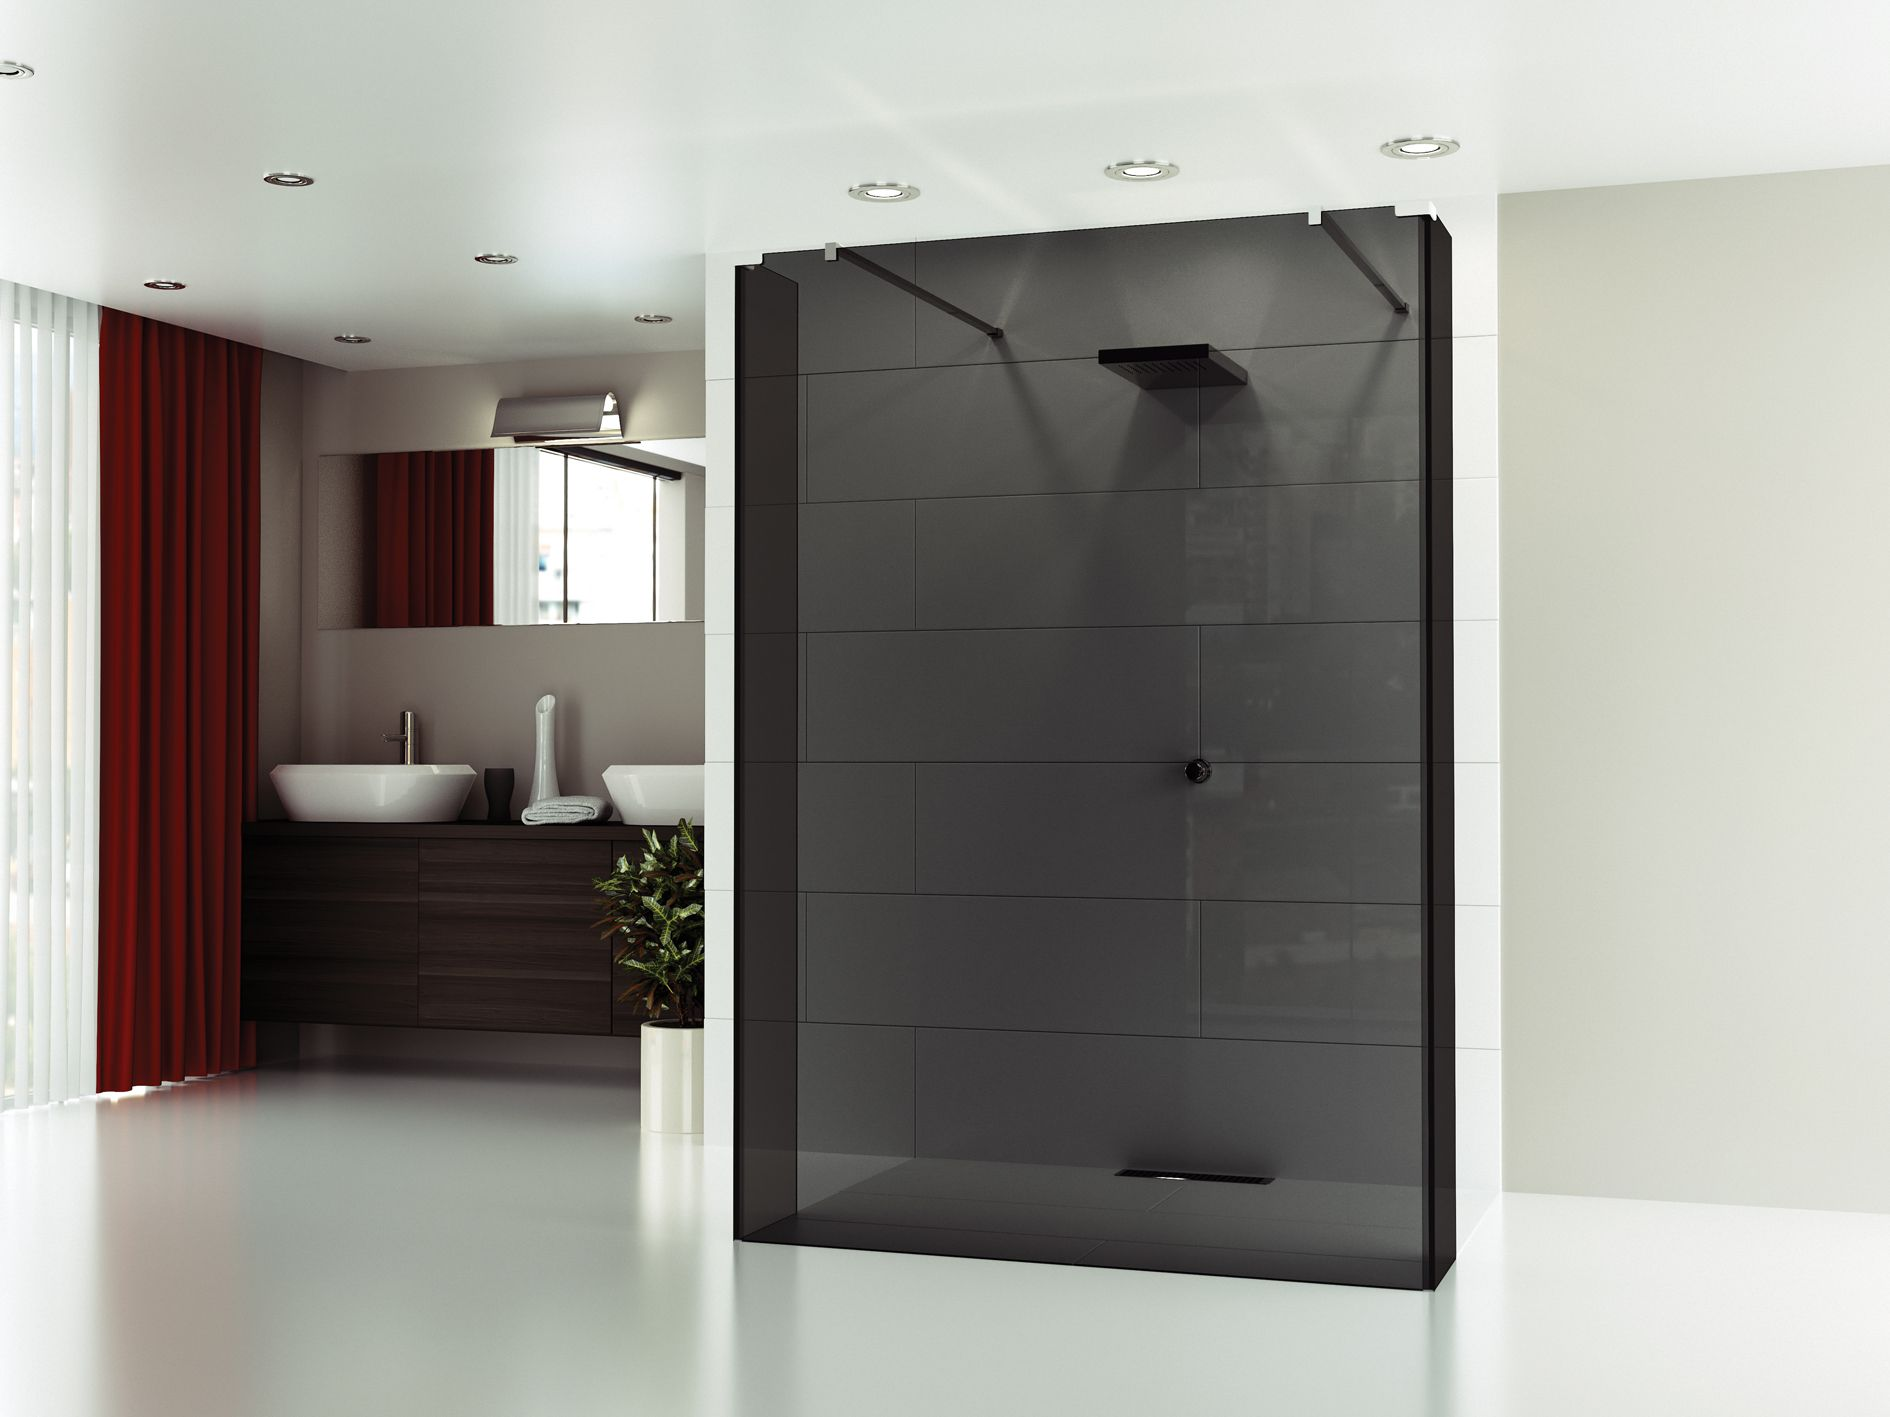 Merlyn 8 series sliding door amp inline panel - This Sophisticated Shower Wall Is From The New Glass By Merlyn Collection With Gorgeous Black Smoked Glass It Will Give The Bathrooms A Real Wow